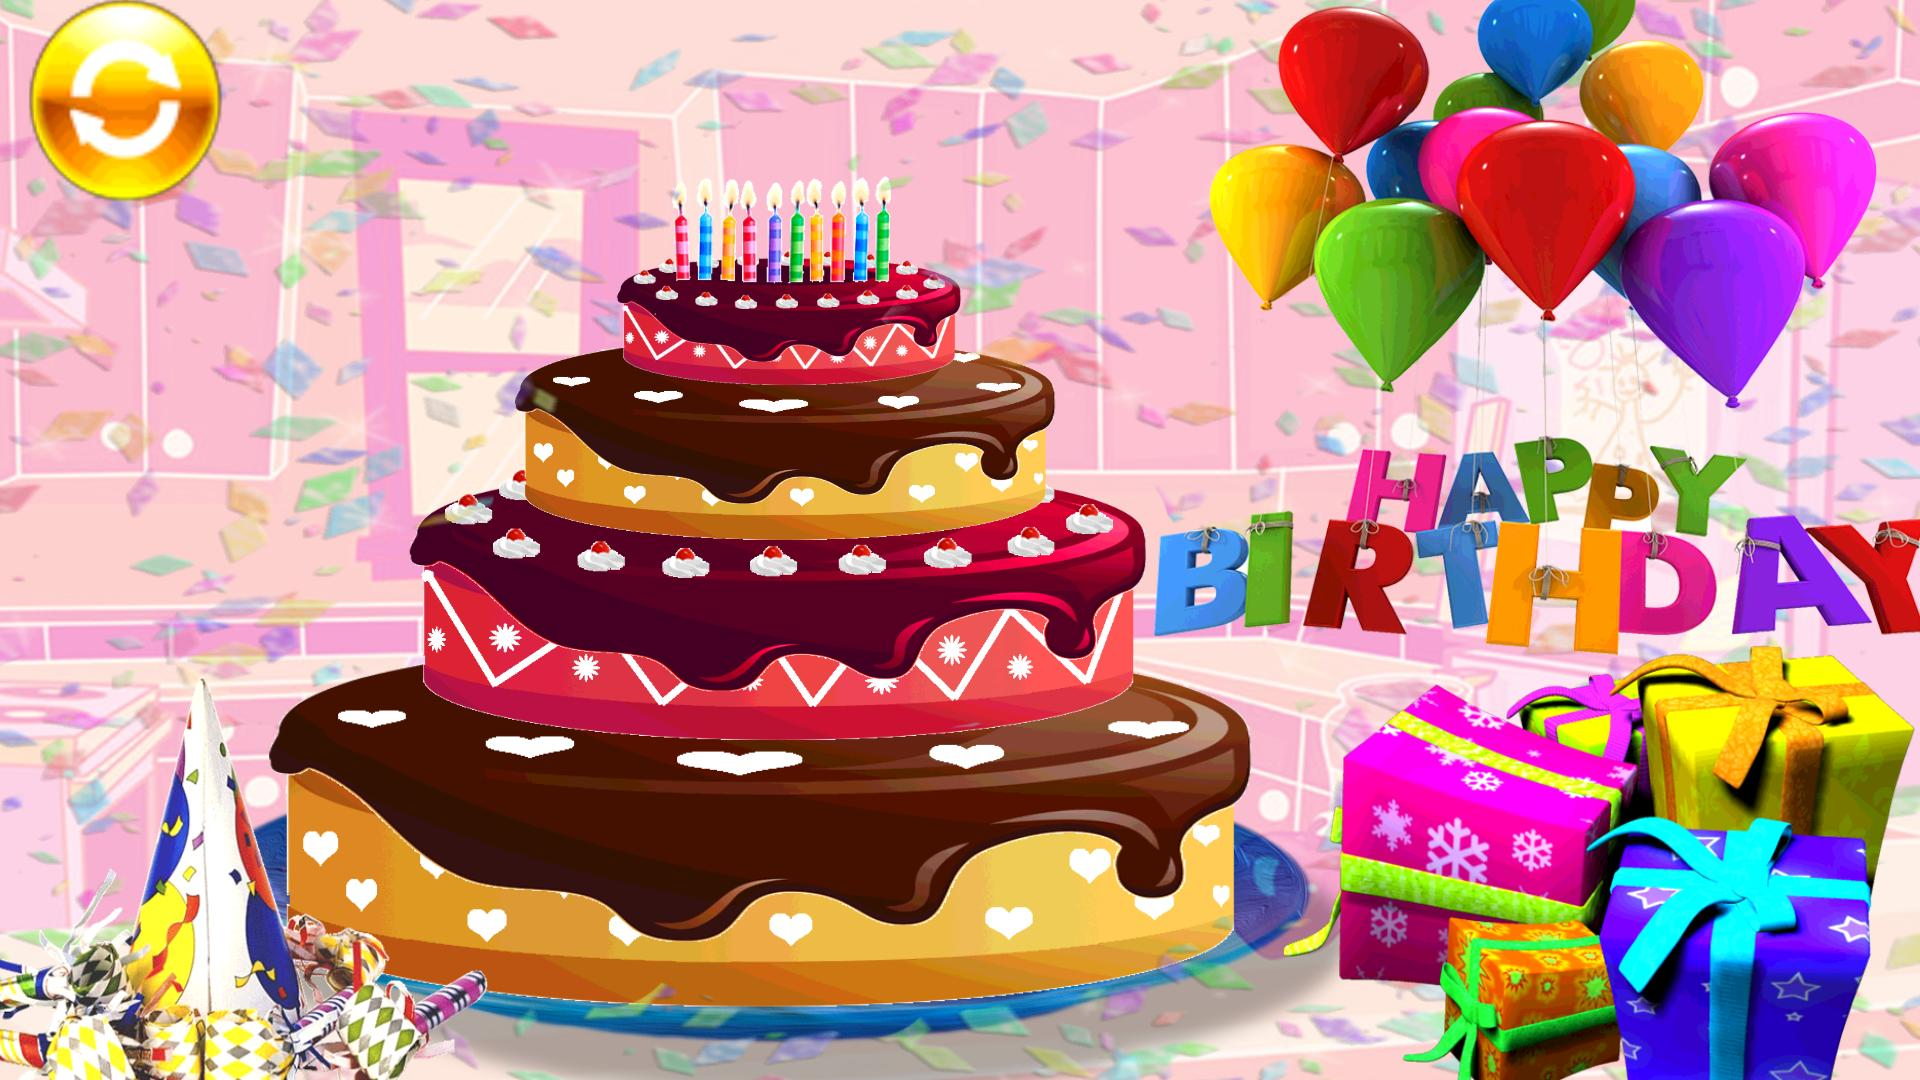 Make Happy Birthday Cake Girls Games For Android Apk Download